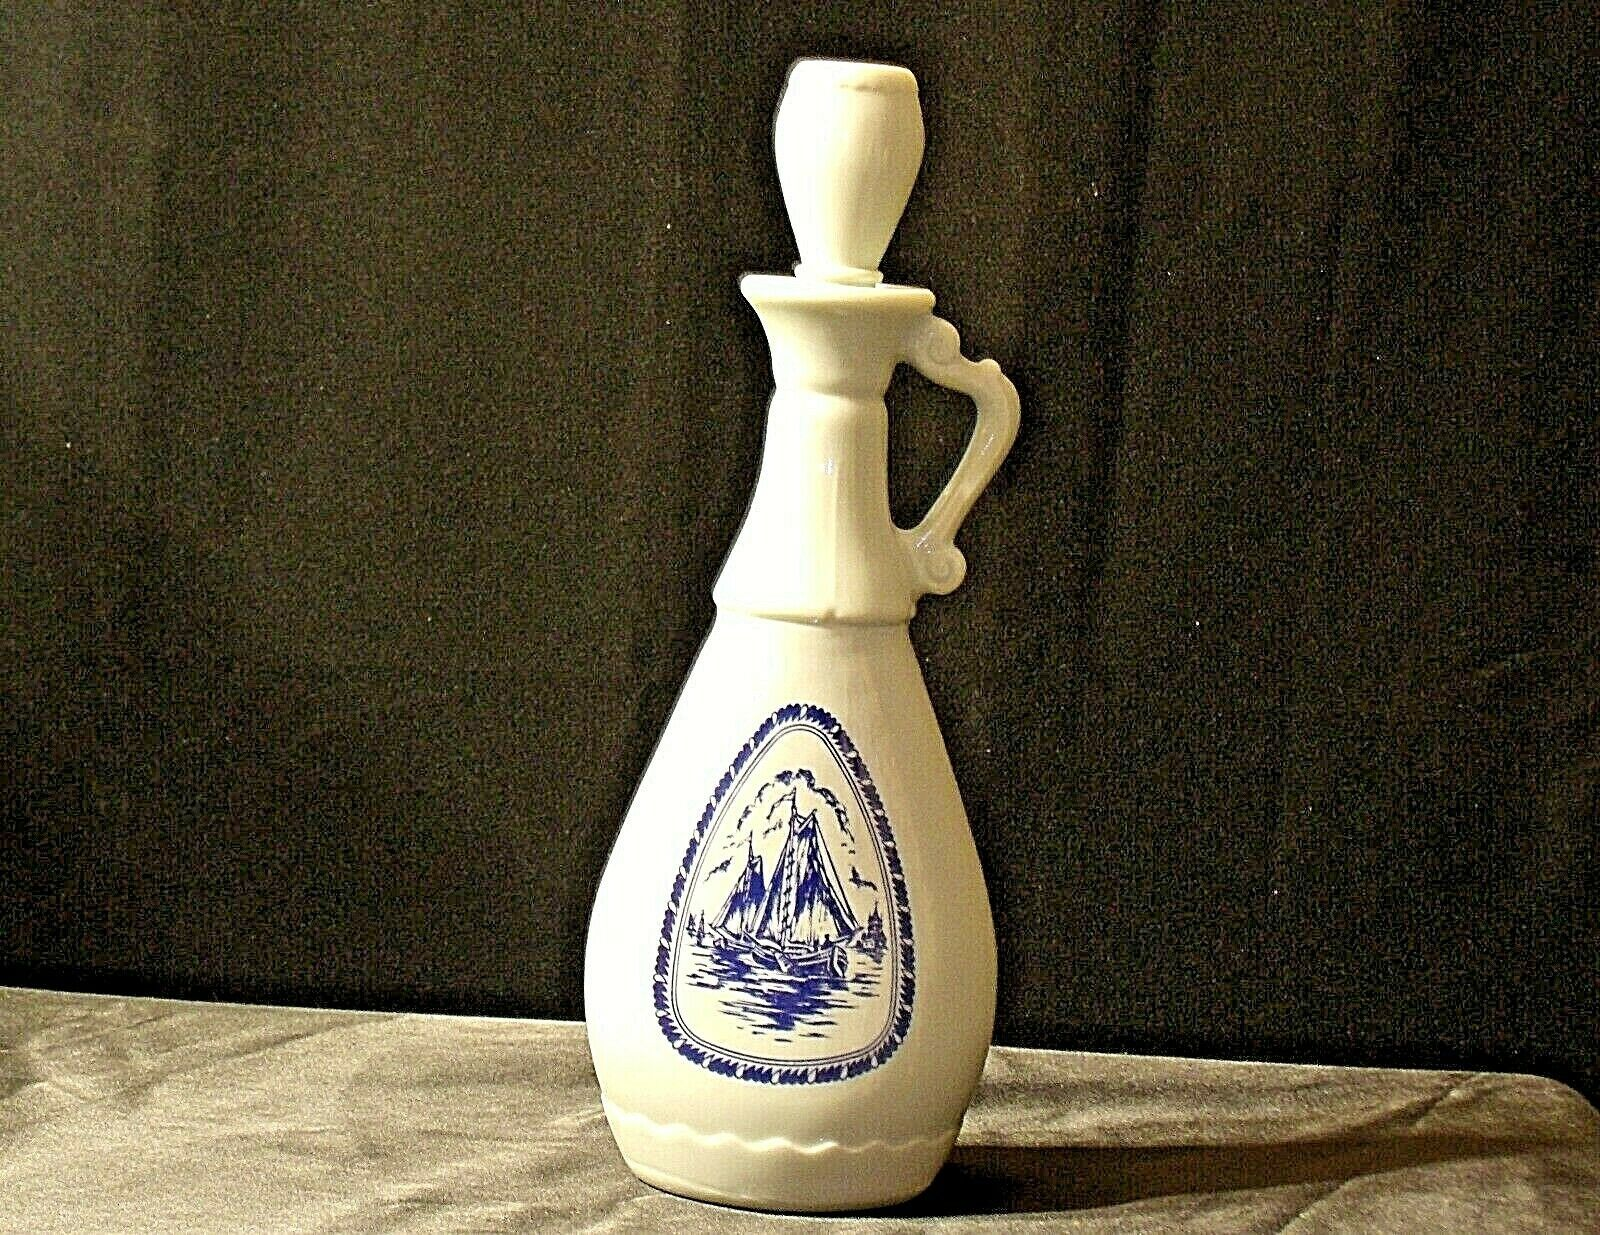 Decanter with Ship Design D-934 119 5 63 AA20-2120 Vintage Tall